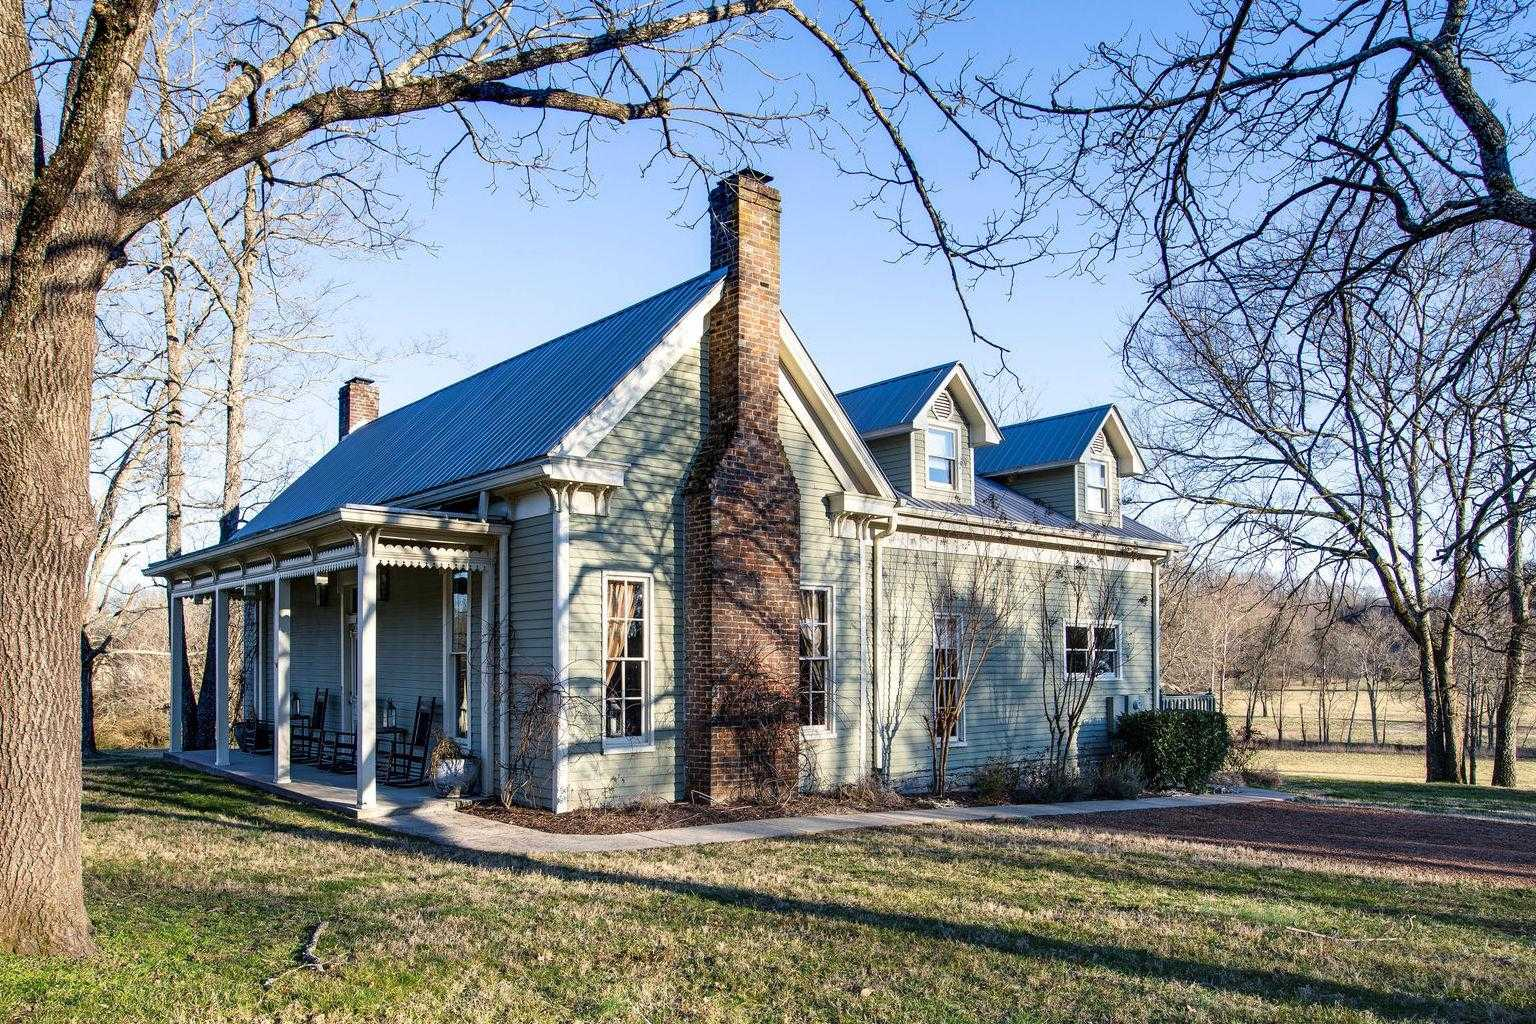 $3,300,000 - 3Br/2Ba -  for Sale in Leipers Fork, Franklin